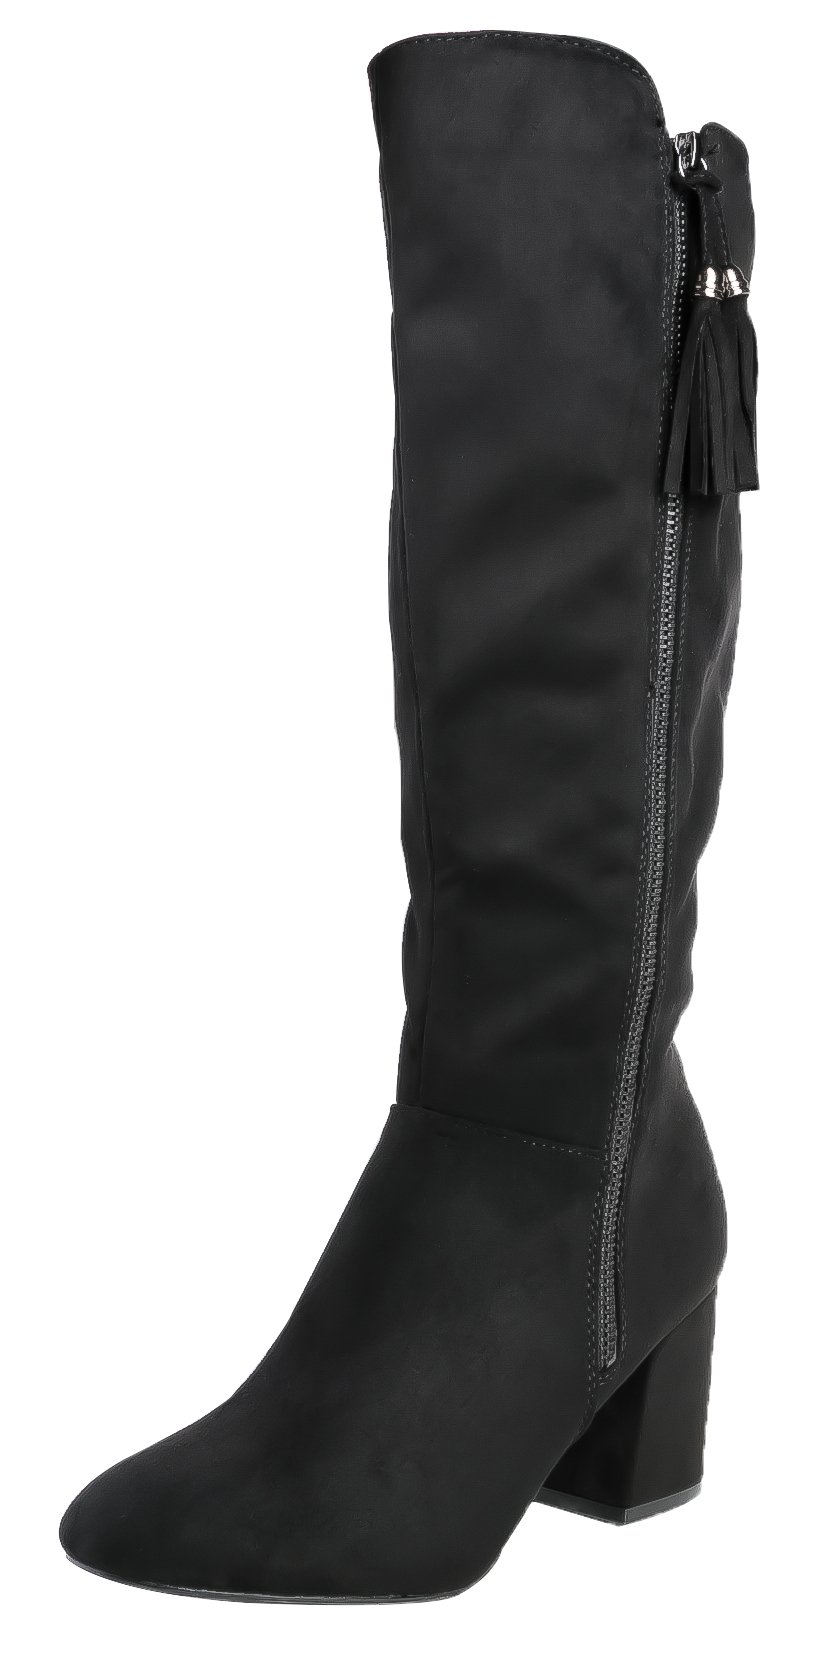 SHENBO Women's Knee High Boots Round Toe Zipper Closure Chunky High Heel Dress Boots (9,Black)